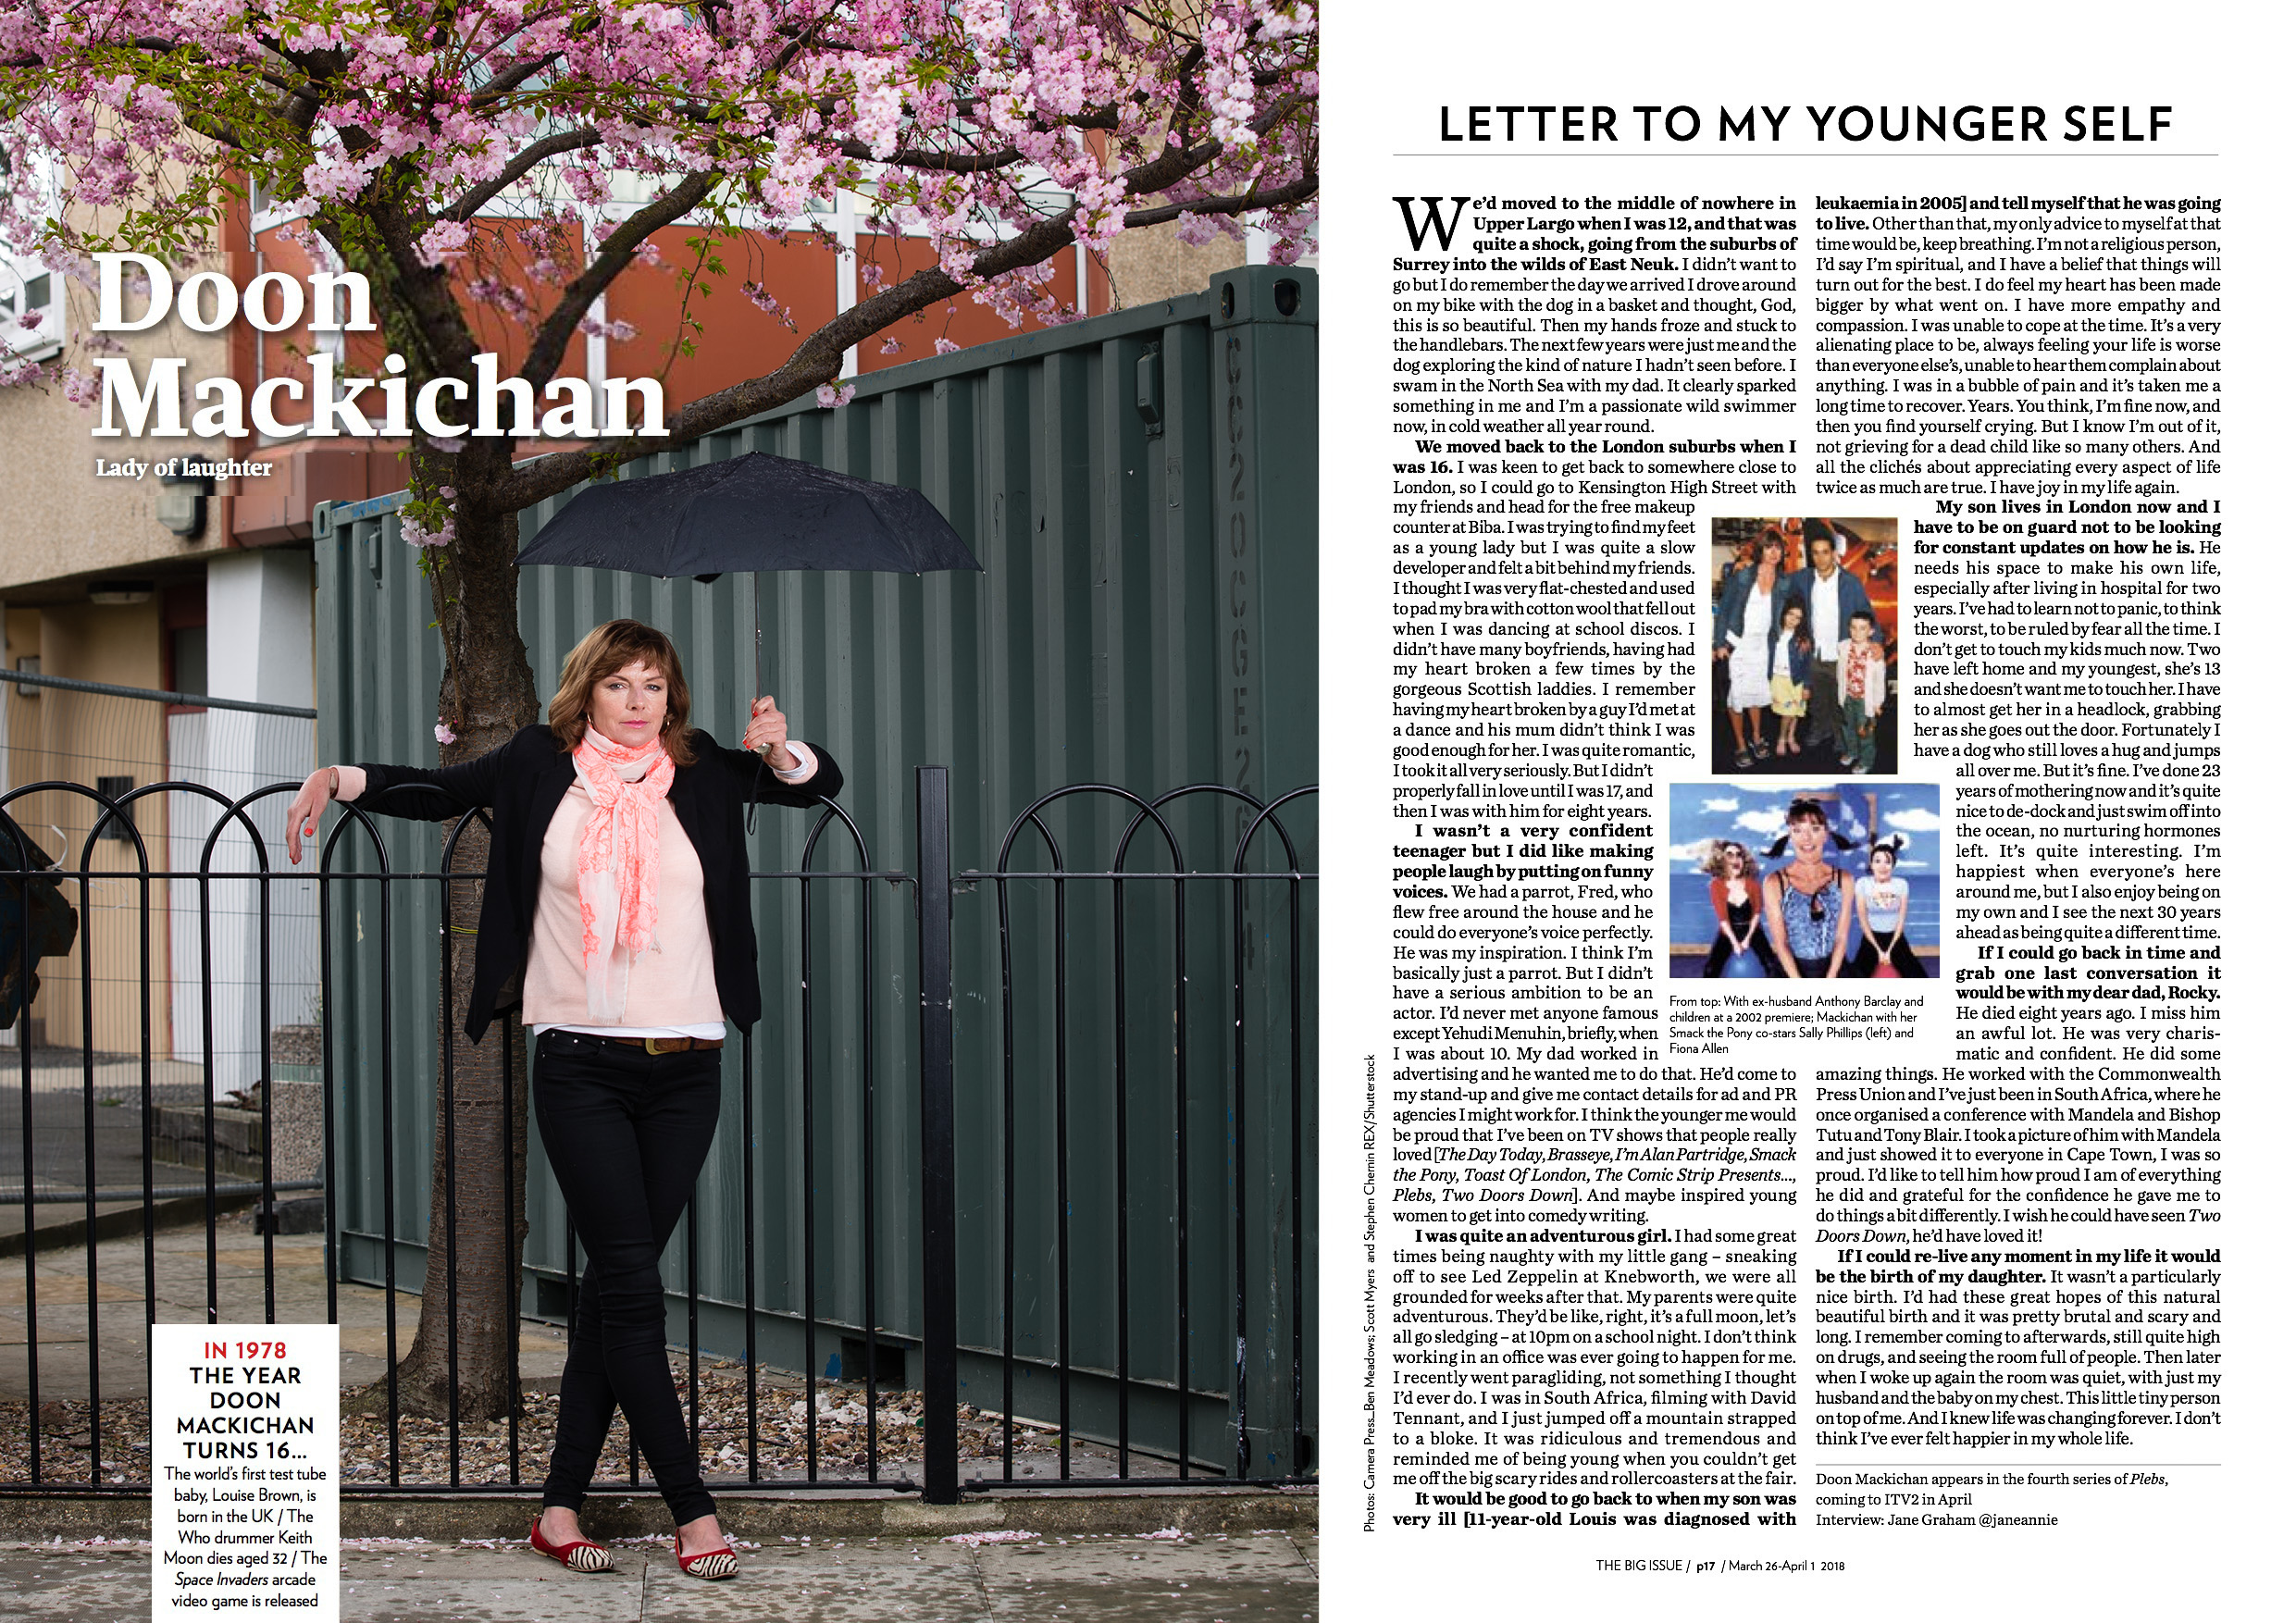 Doon Mackichan for the Big Issue